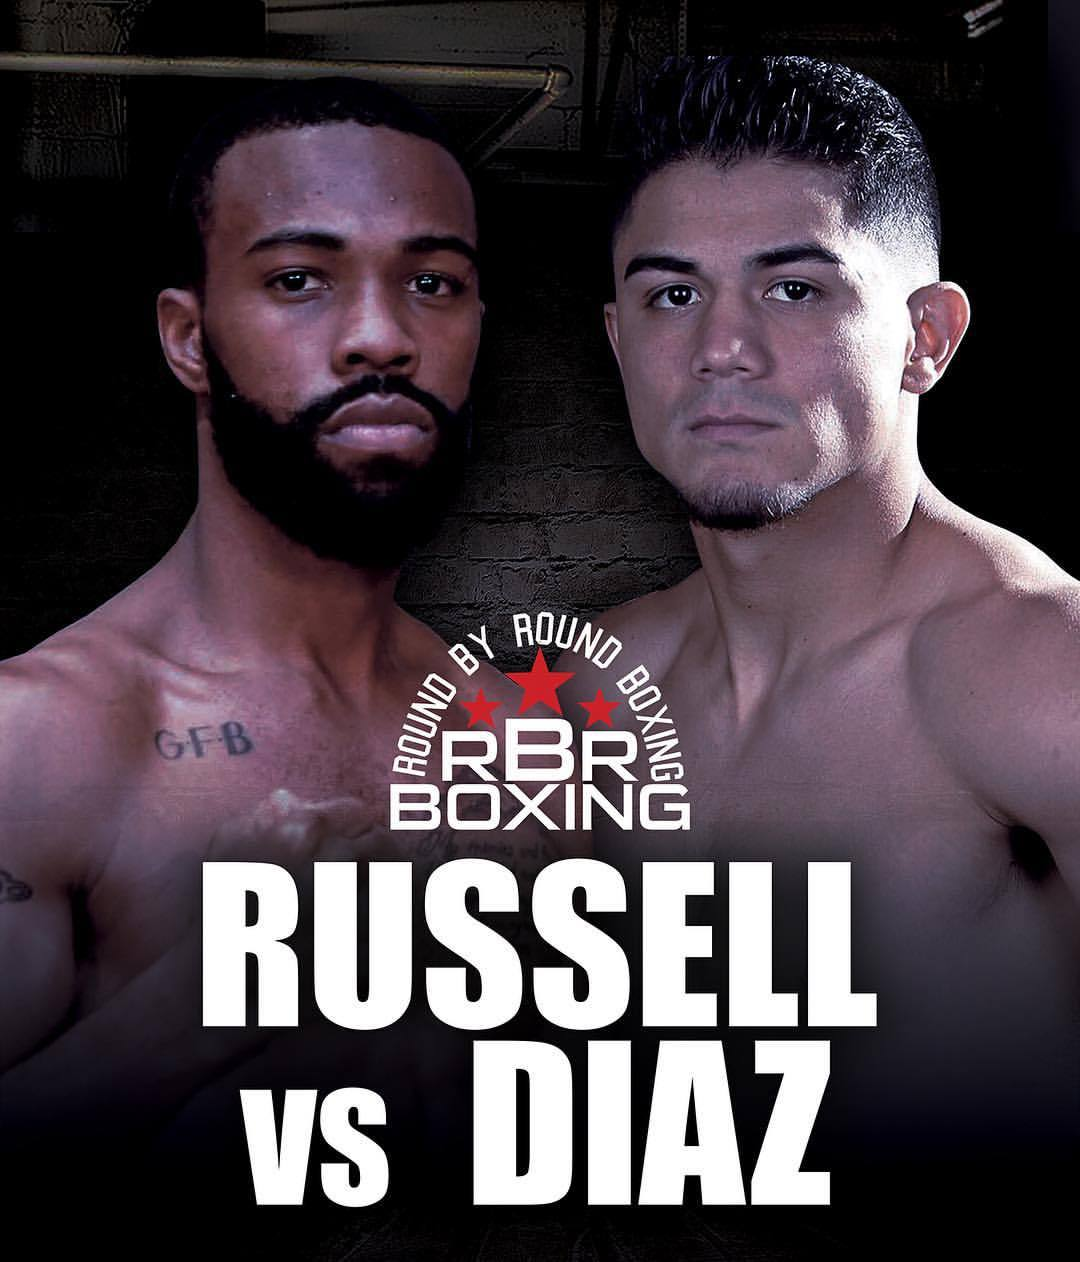 gary russell jr. vs. joseph diaz